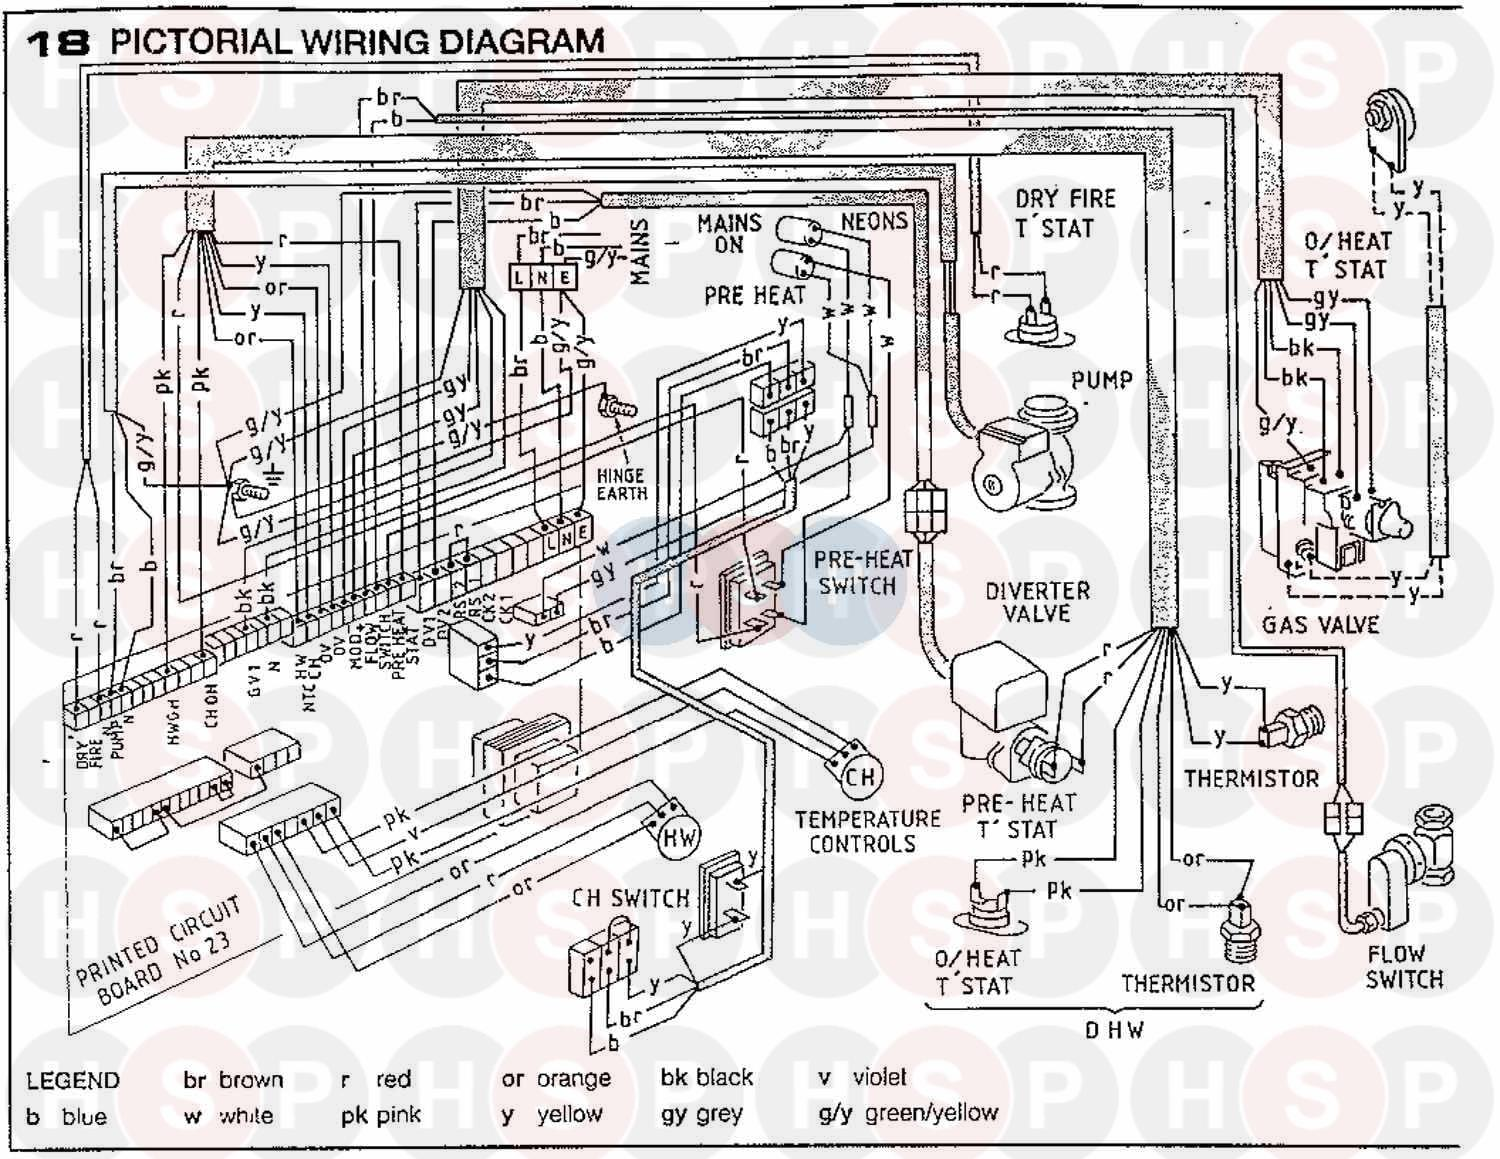 Ideal Sprint Rapide Rs 75n Wiring Diagram 2 Heating Pictorial Click The To Open It On A New Page